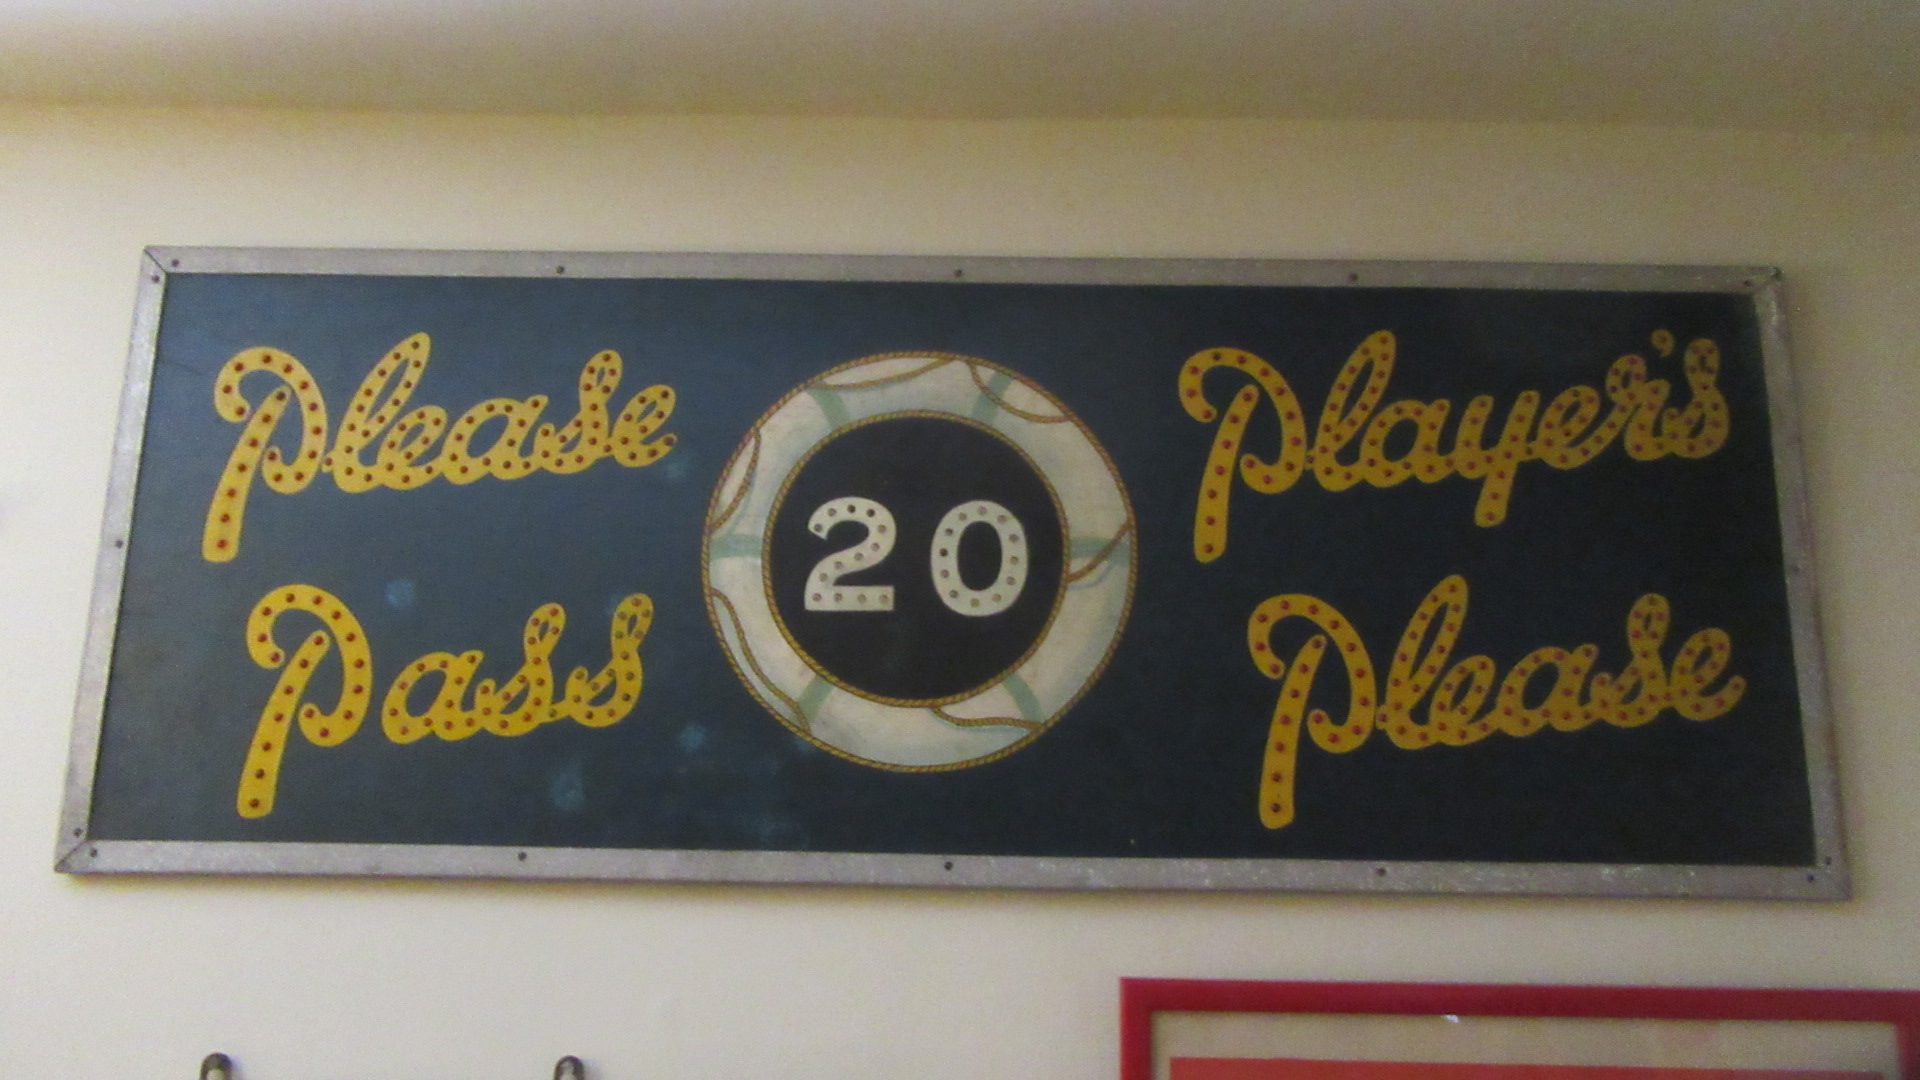 RARE HAND PAINTED ANTIQUE PLAYERS PLEASE REFLECTOR ADVERTISING SIGN